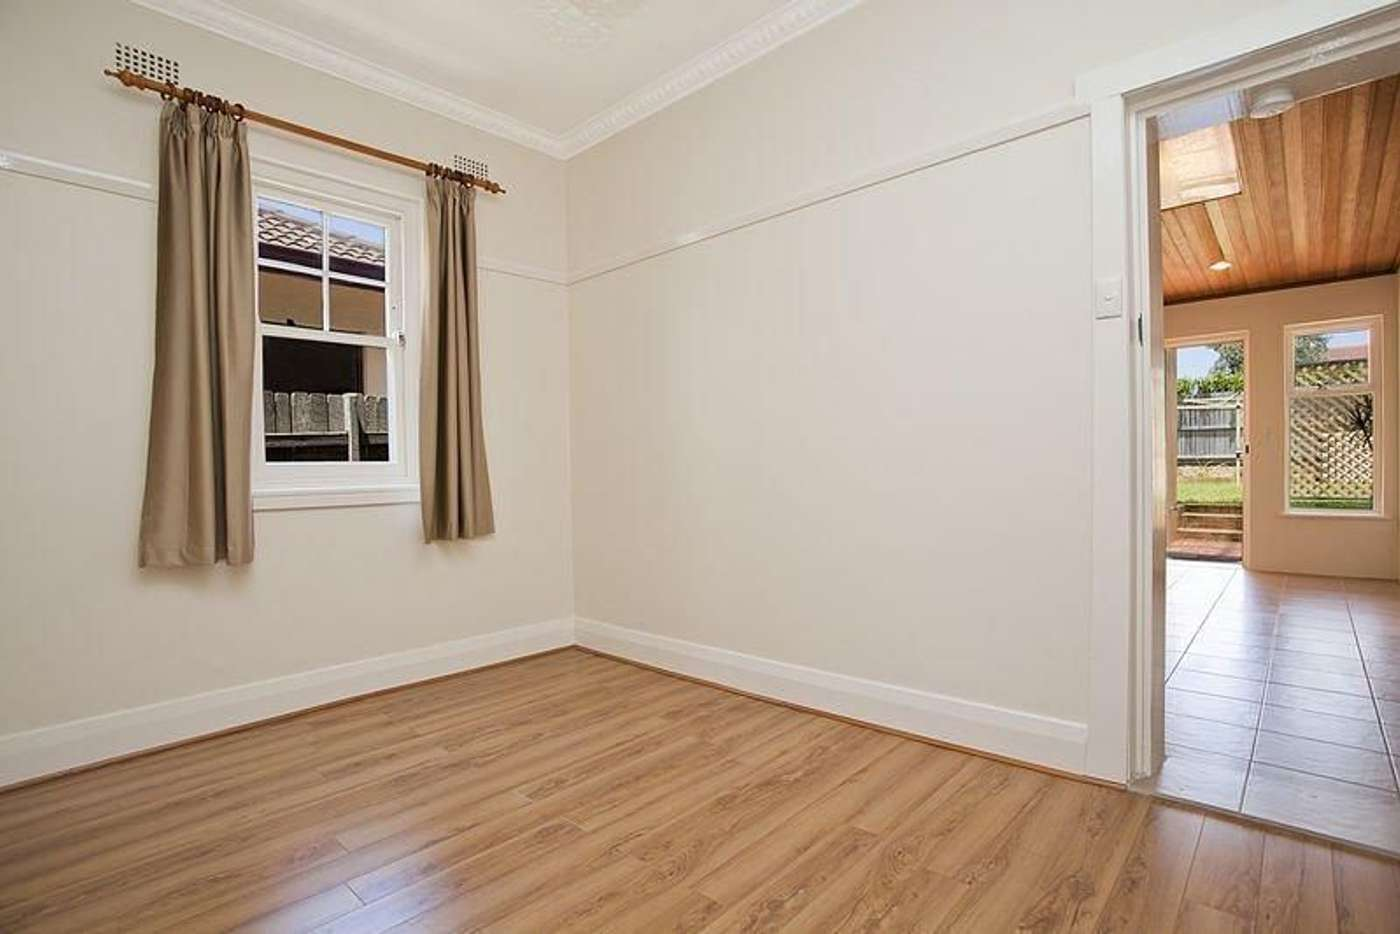 Sixth view of Homely apartment listing, 23A Banks Street, Maroubra NSW 2035